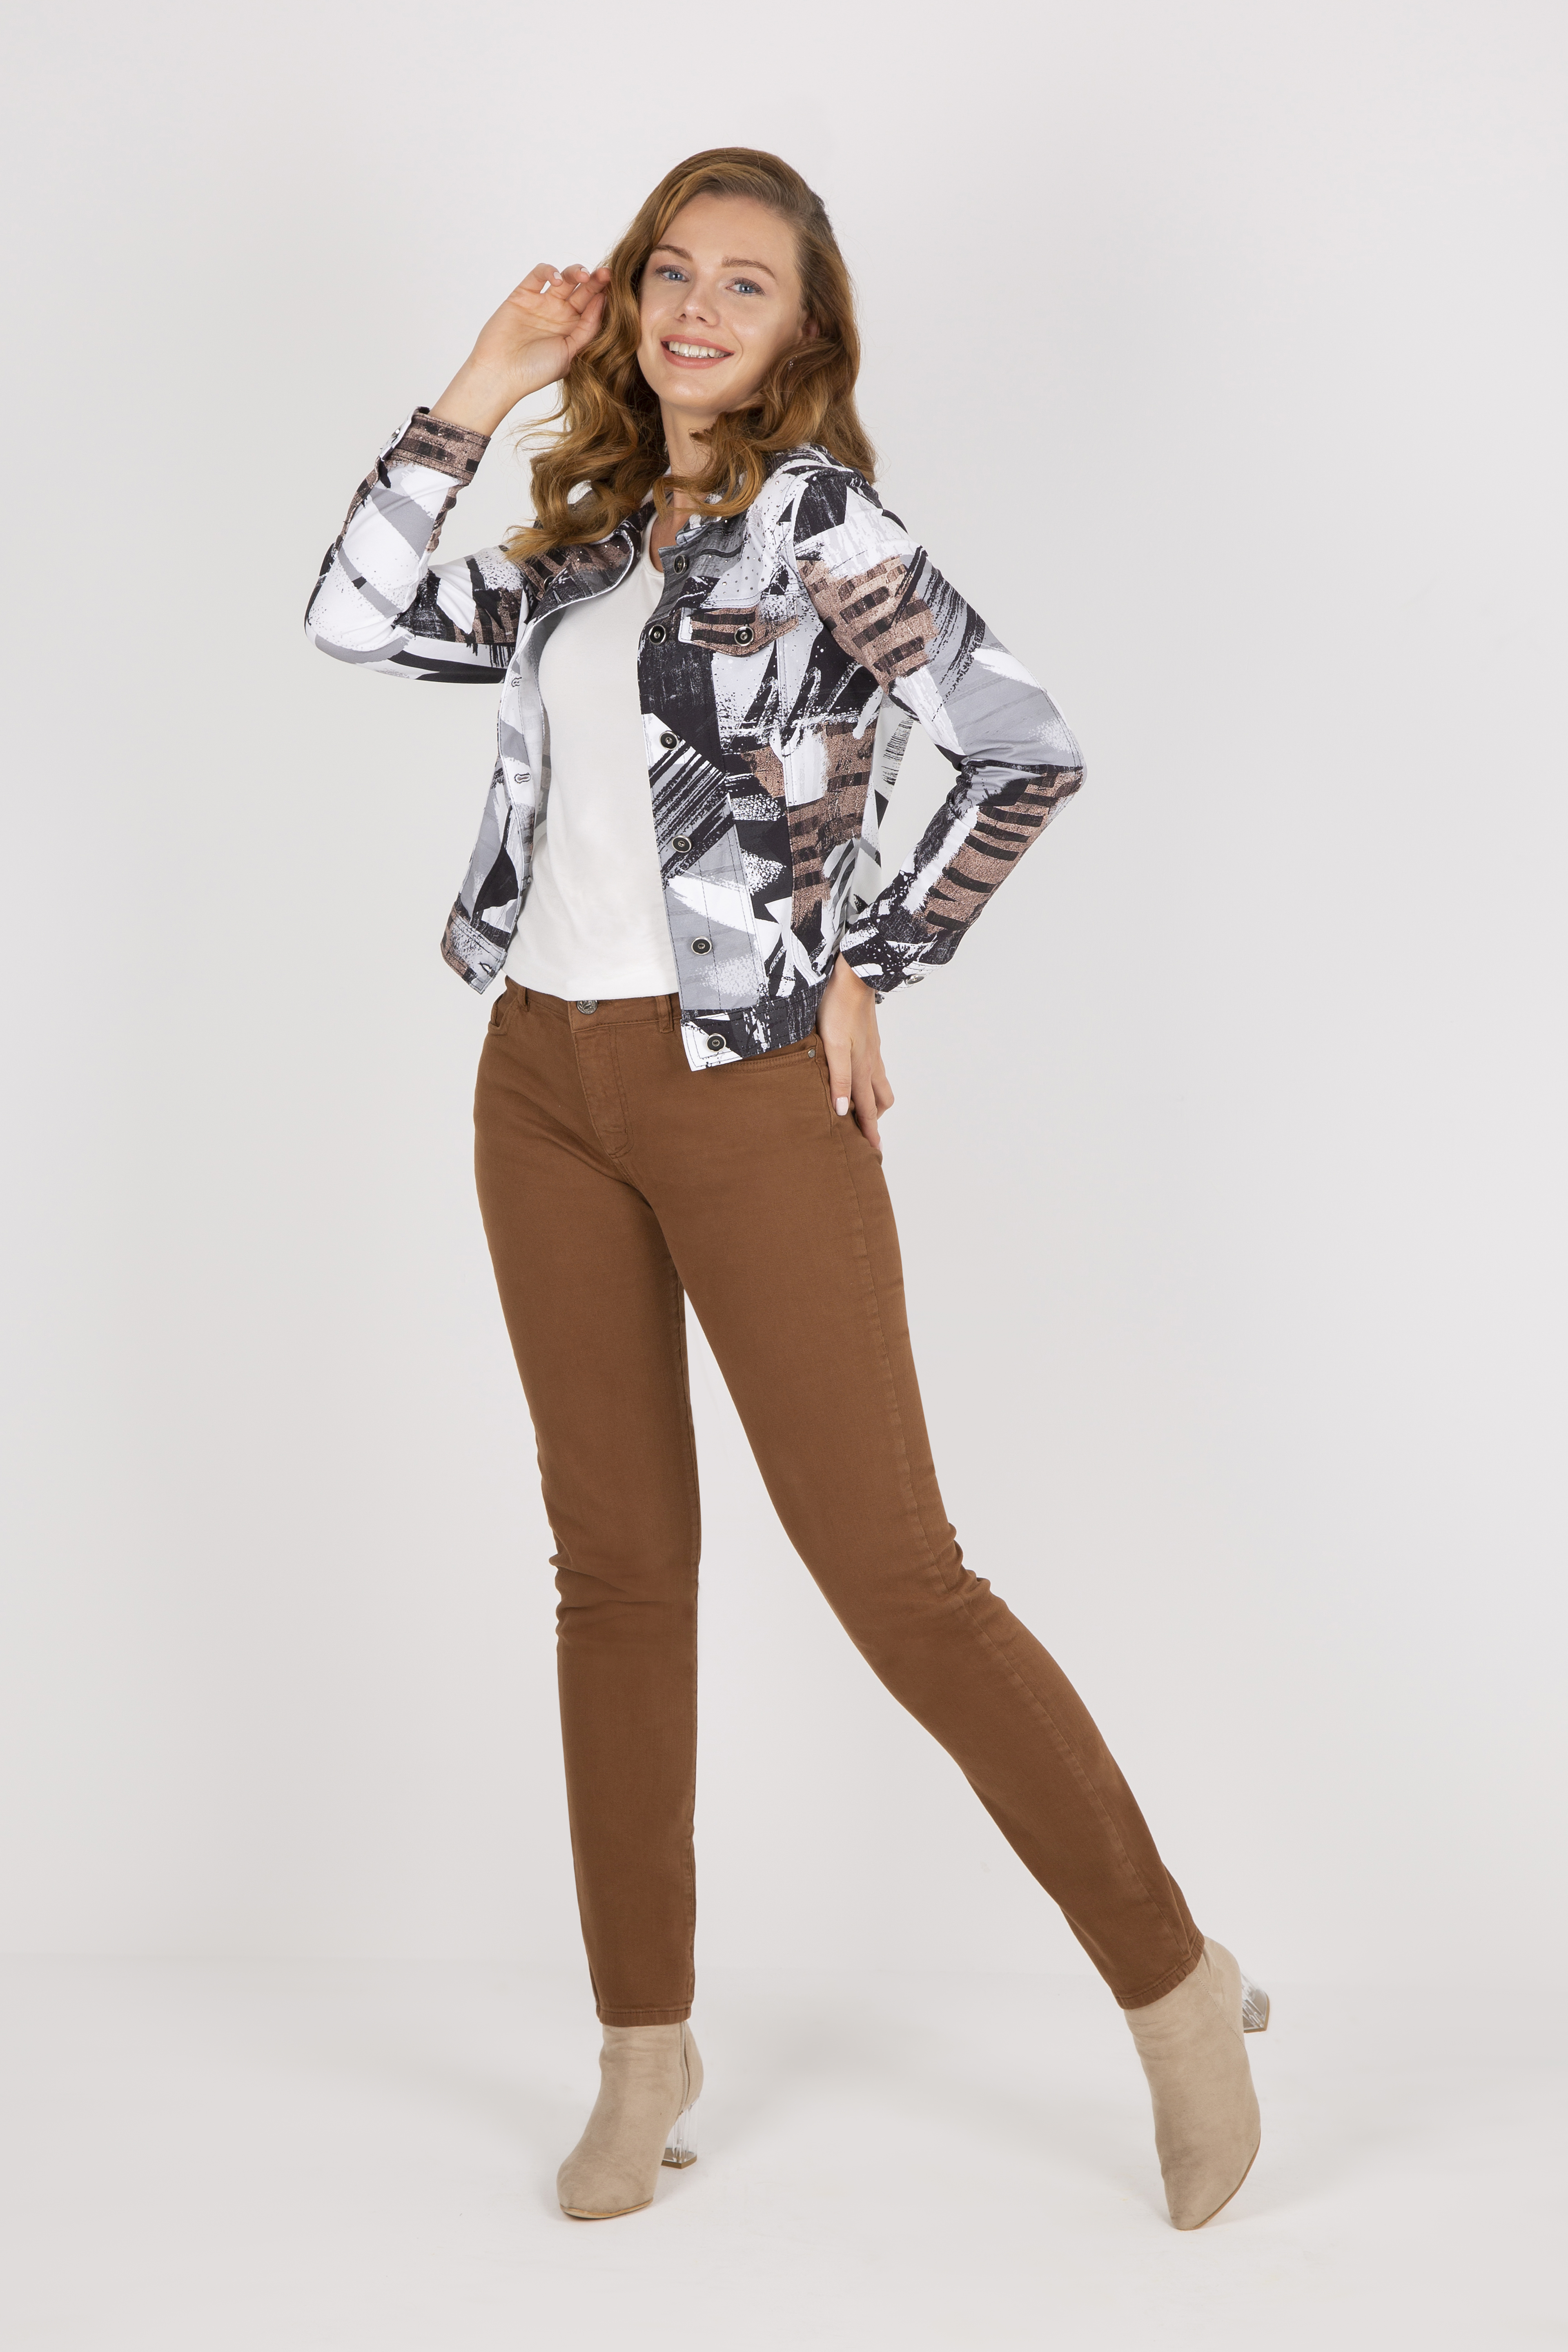 Simply Art Dolcezza: A Splash of Cacao Abstract Art Soft Denim Jacket (2 Left!)